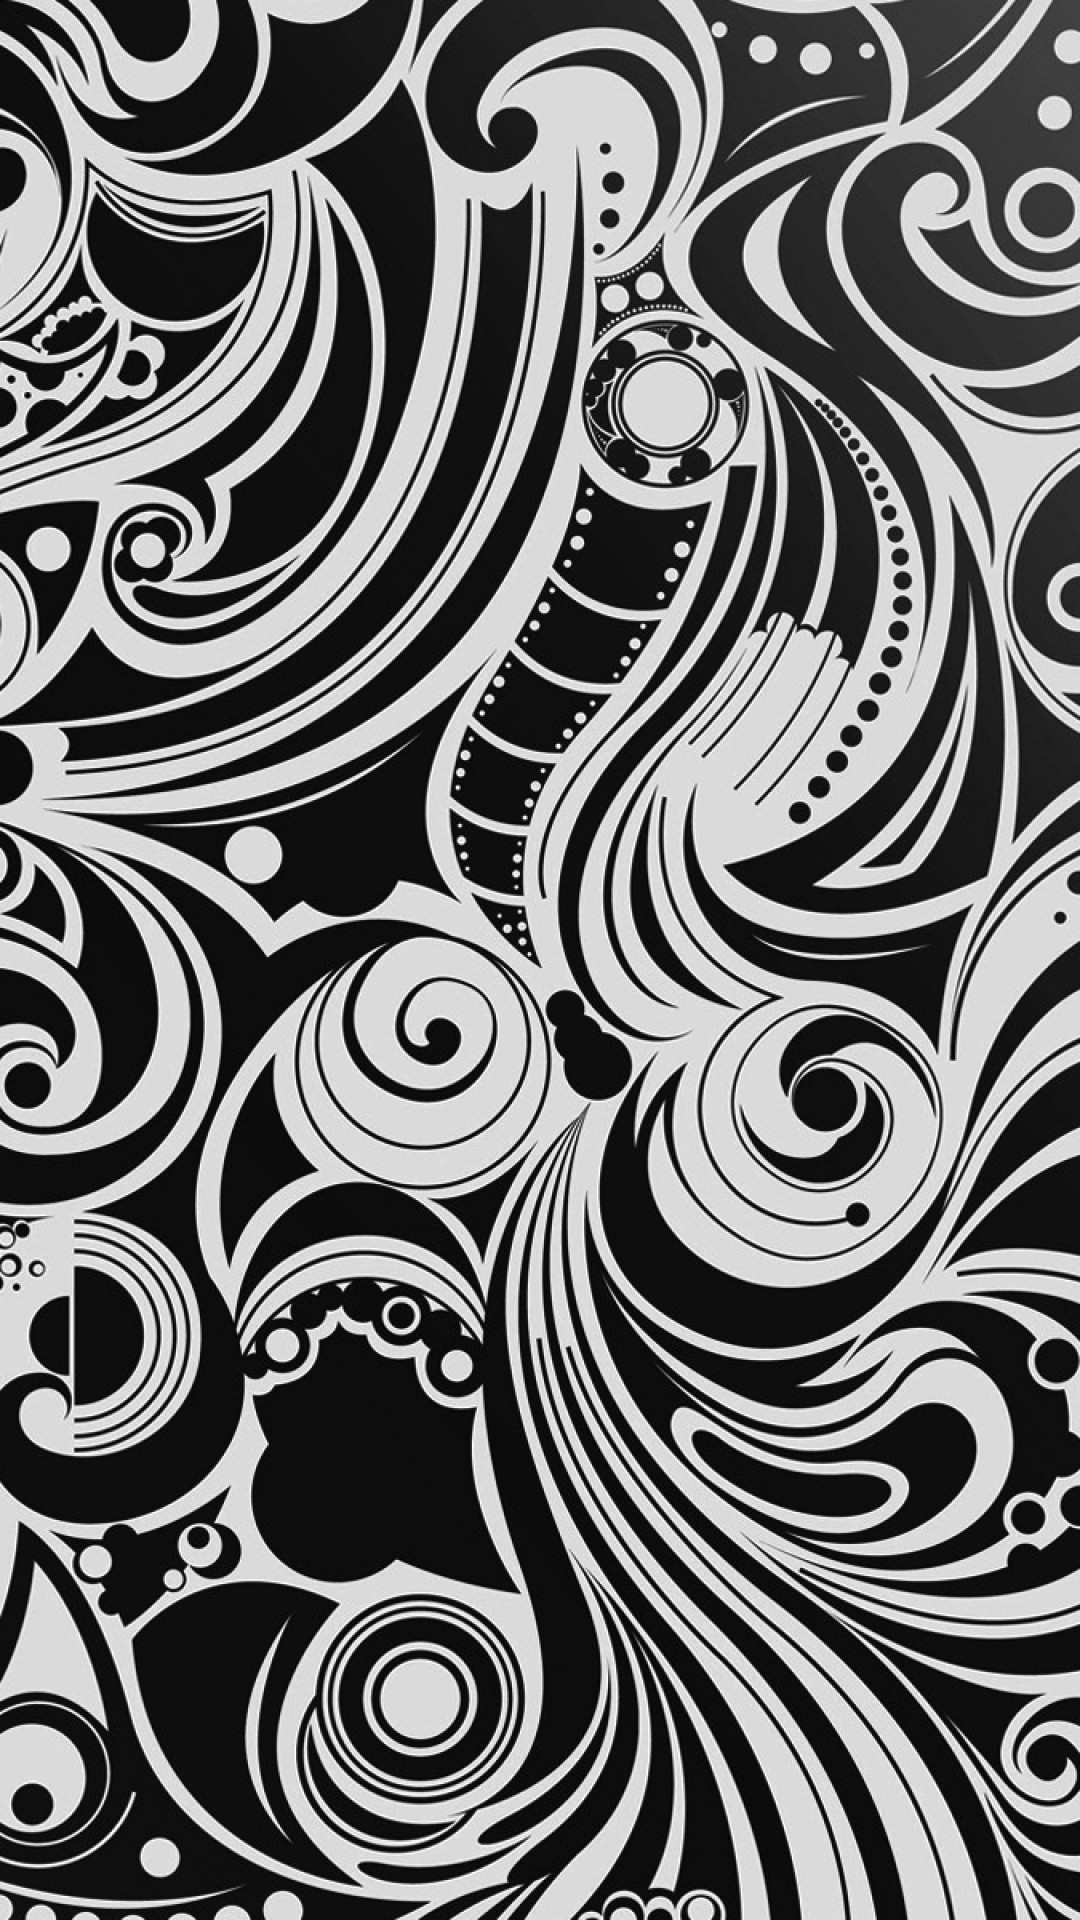 1080x1920 Black And White Spiral Pattern Android Wallpaper ...